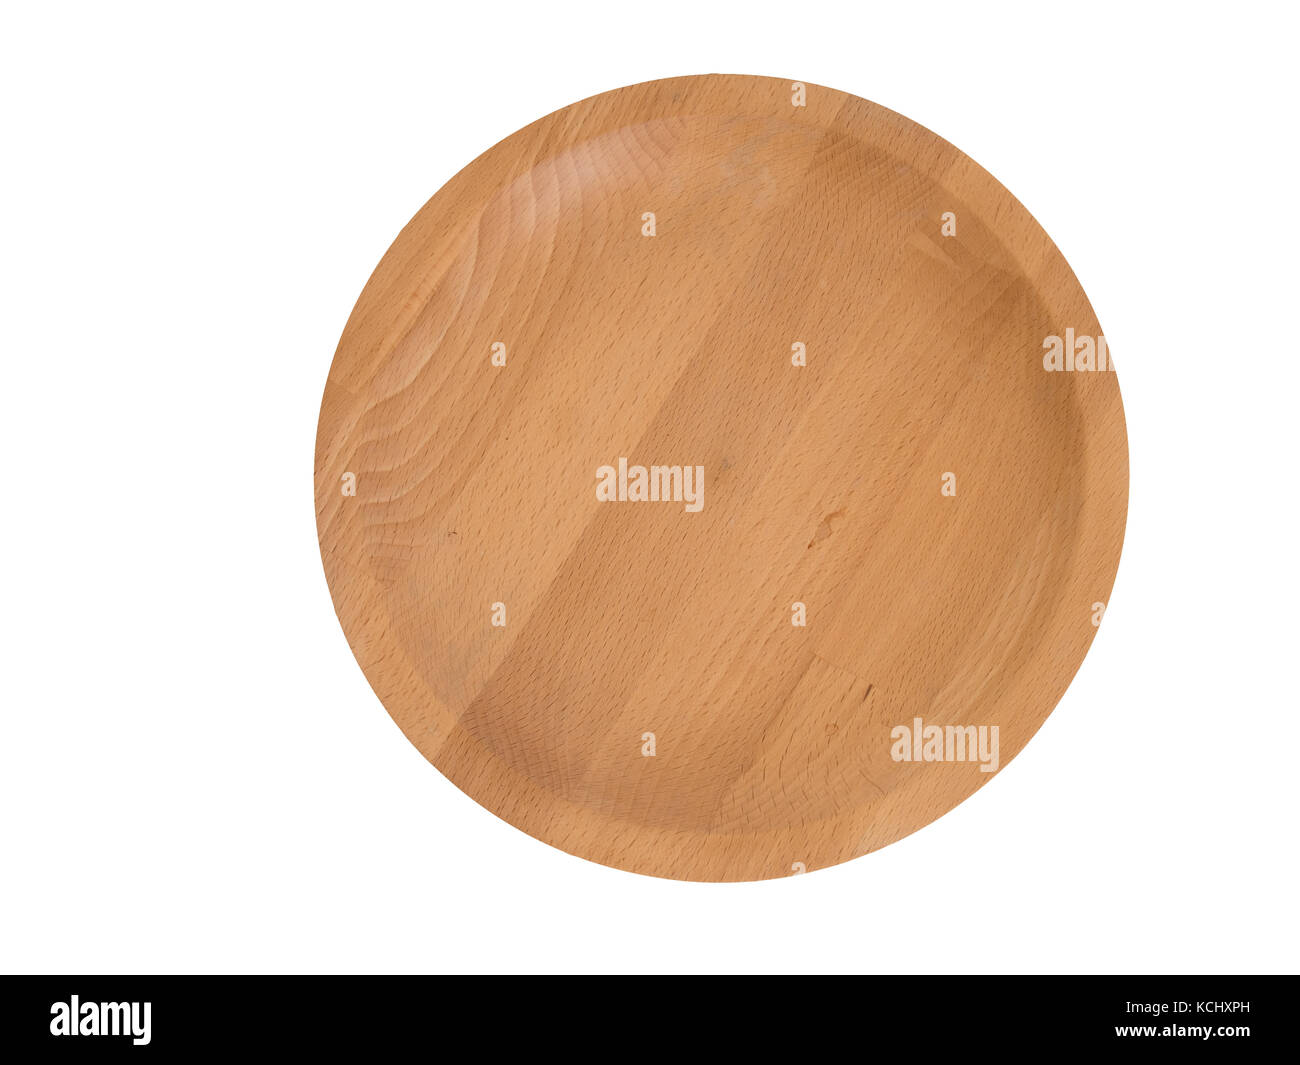 Hand crafted wooden tray, plate. Overhead view with great grain.Light colour wood. - Stock Image